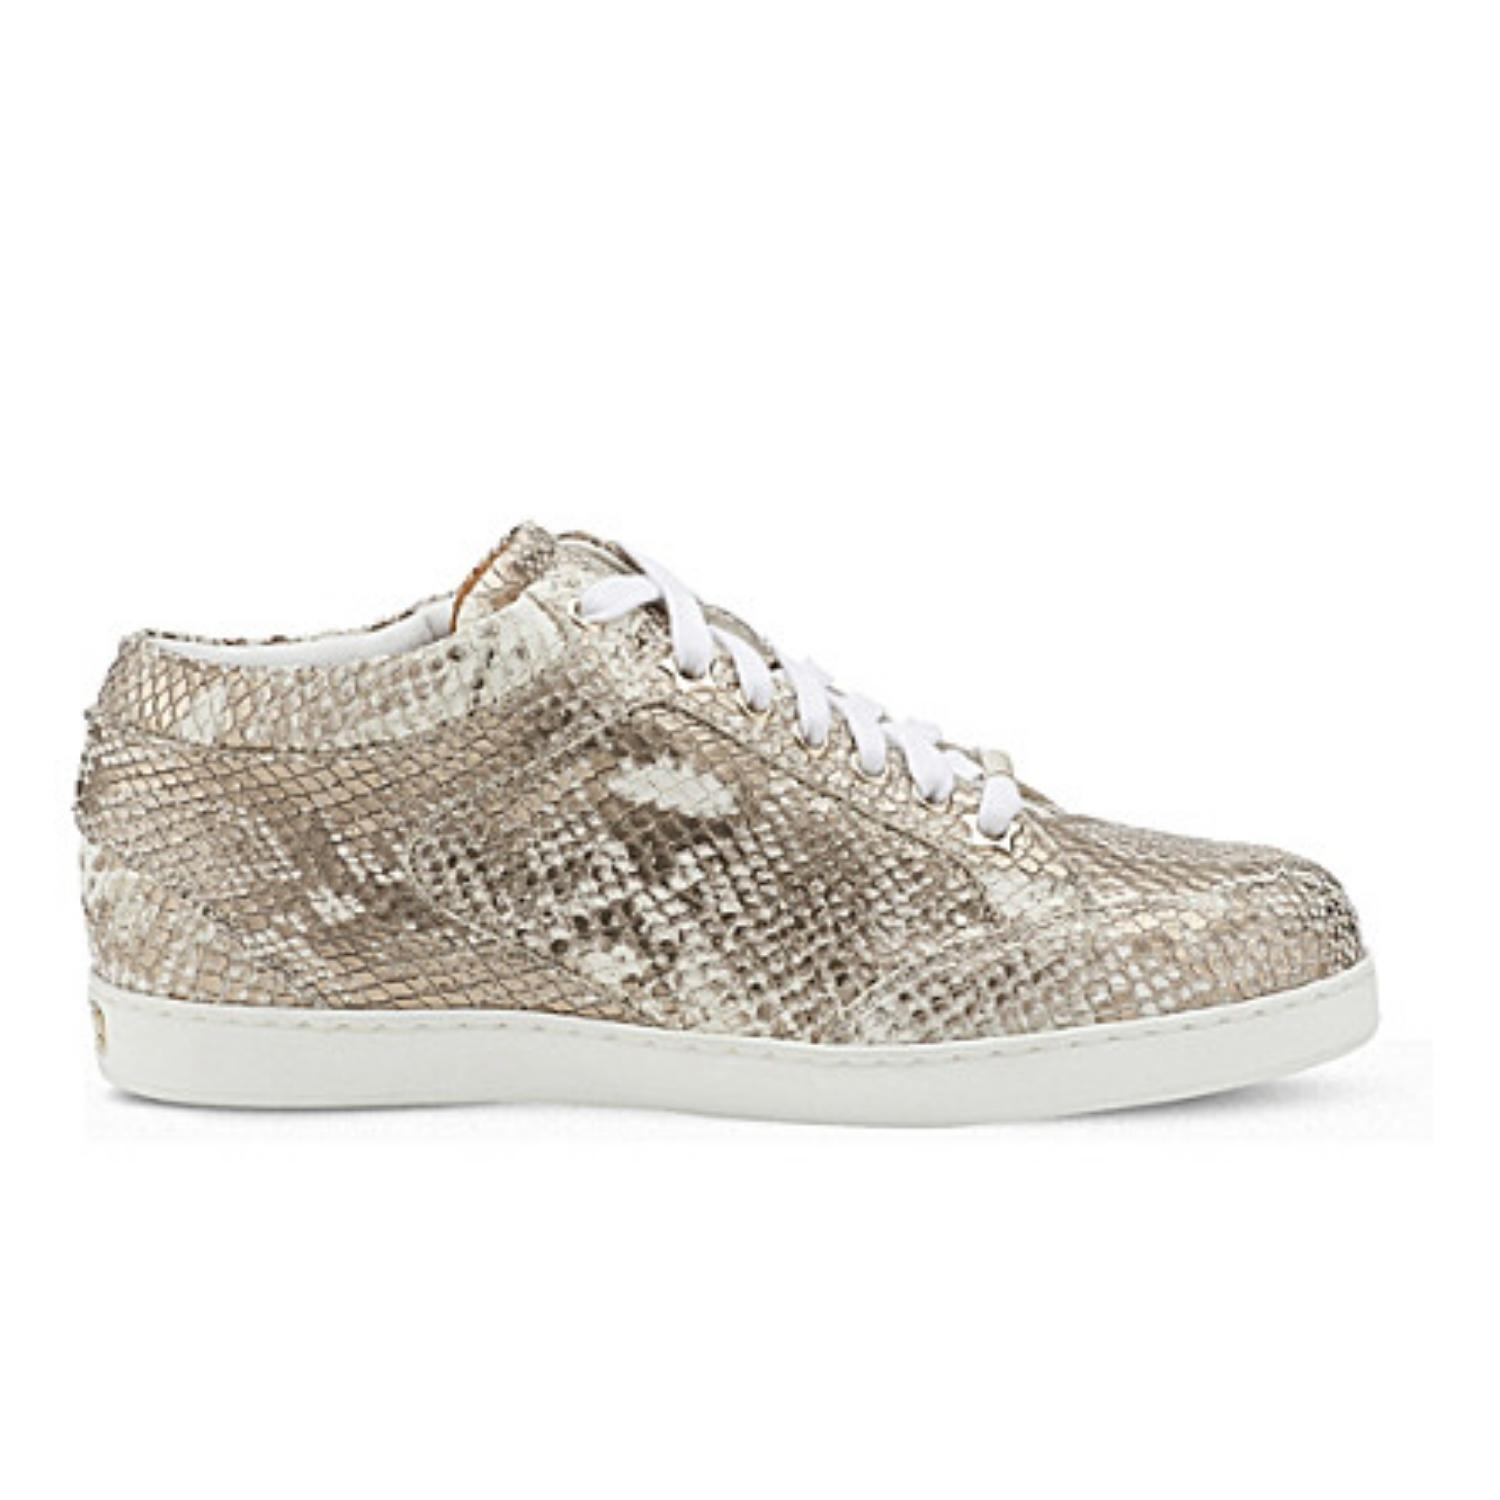 Jimmy Choo Champaign Miami Snakeprint Sneakers Sneakers Size EU 39.5 (Approx. US 9.5) Regular (M, B)